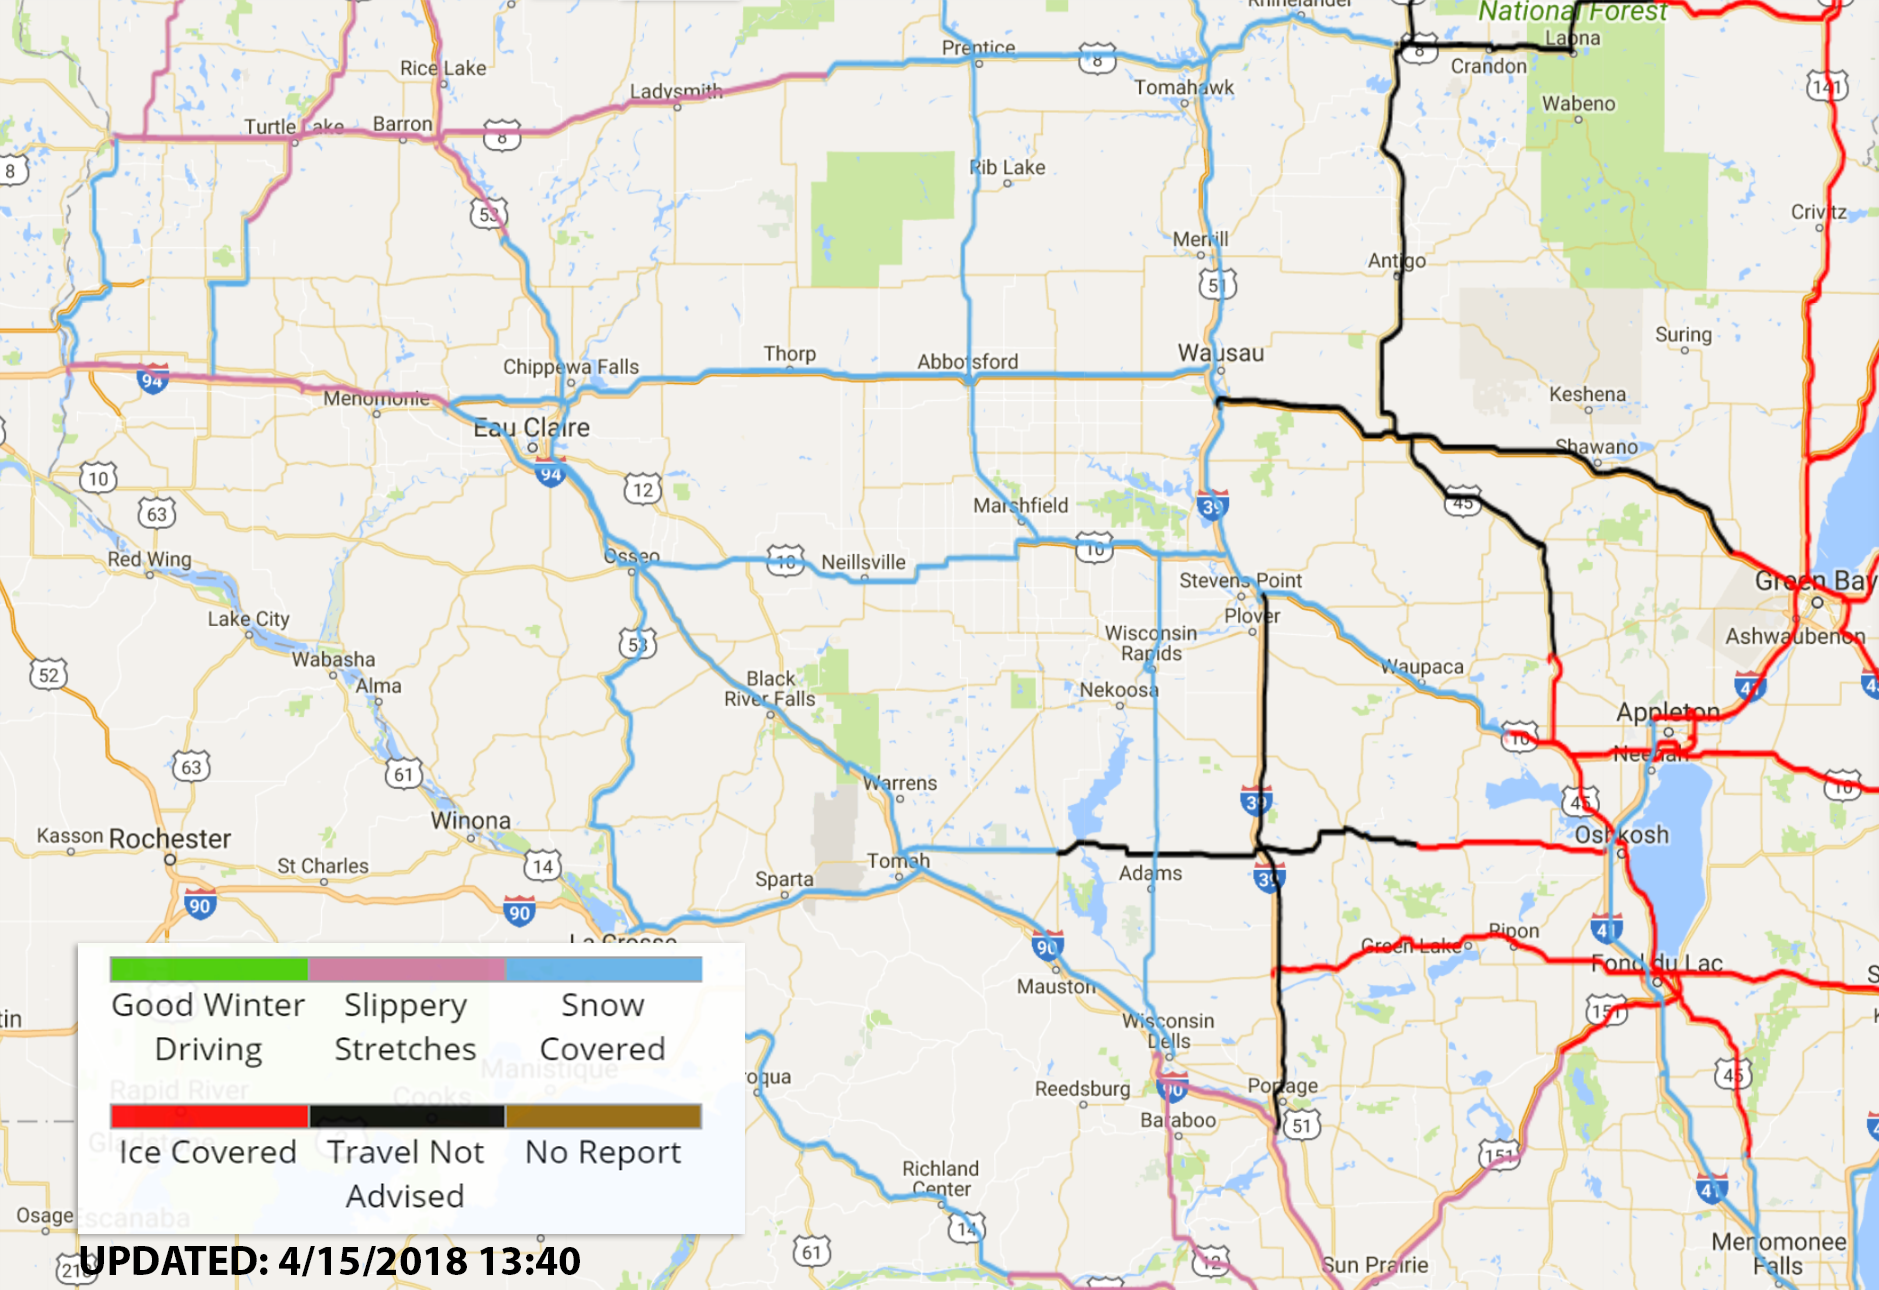 WI Road Conditions 4-15-2018 | OnFocus Wi Winter Road Conditions Map on